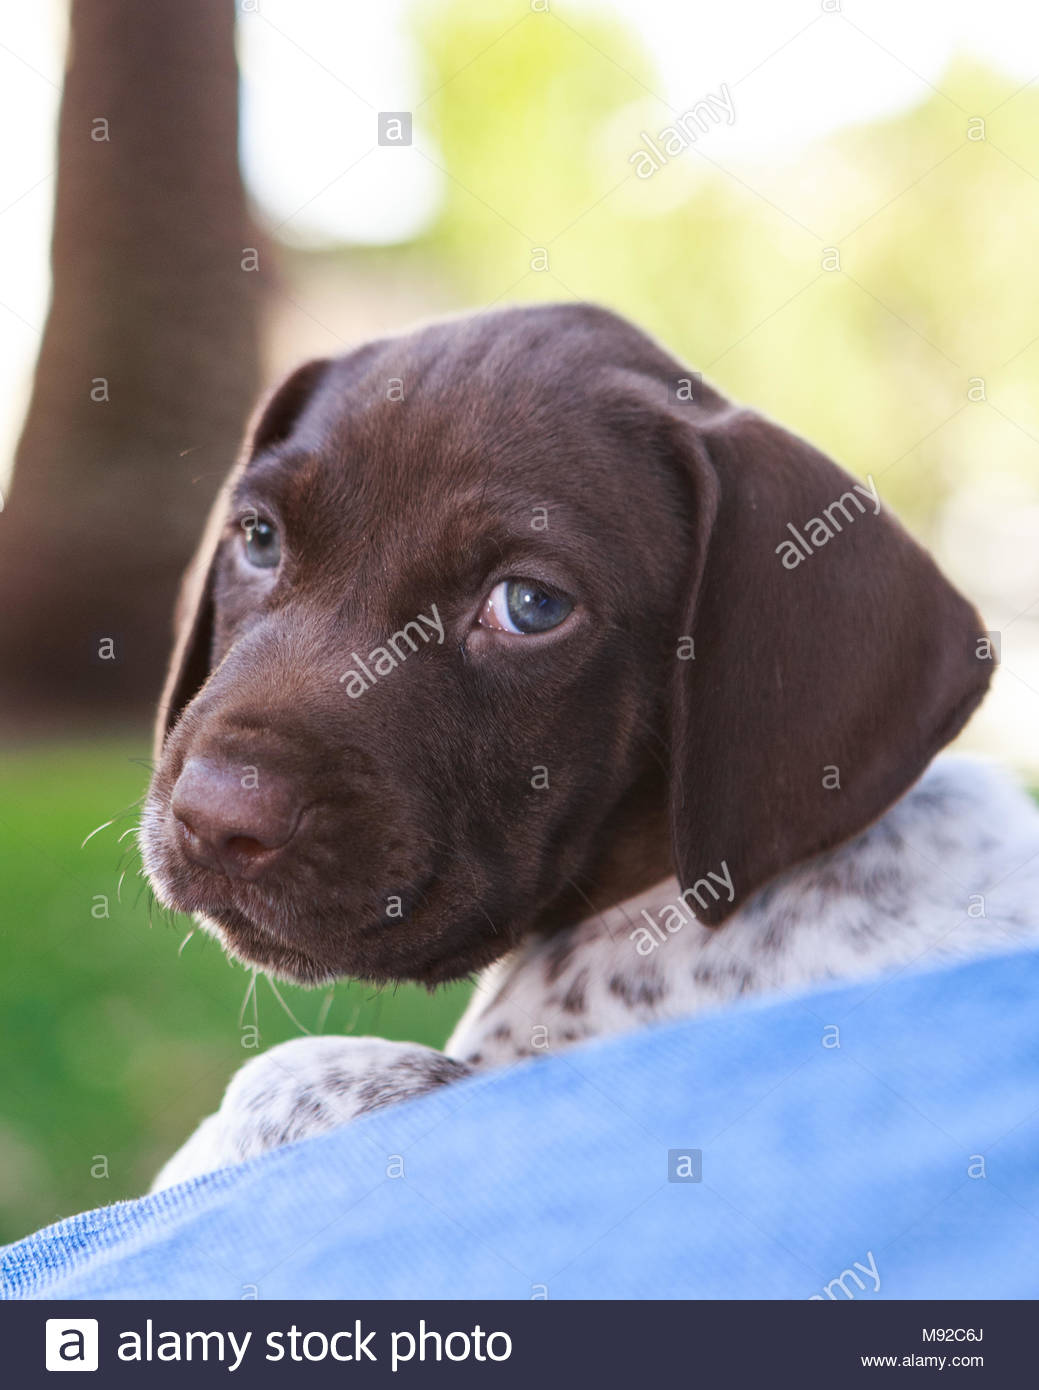 Close-up of German Shorthaired pointer puppy face looking toward camera - Stock Image